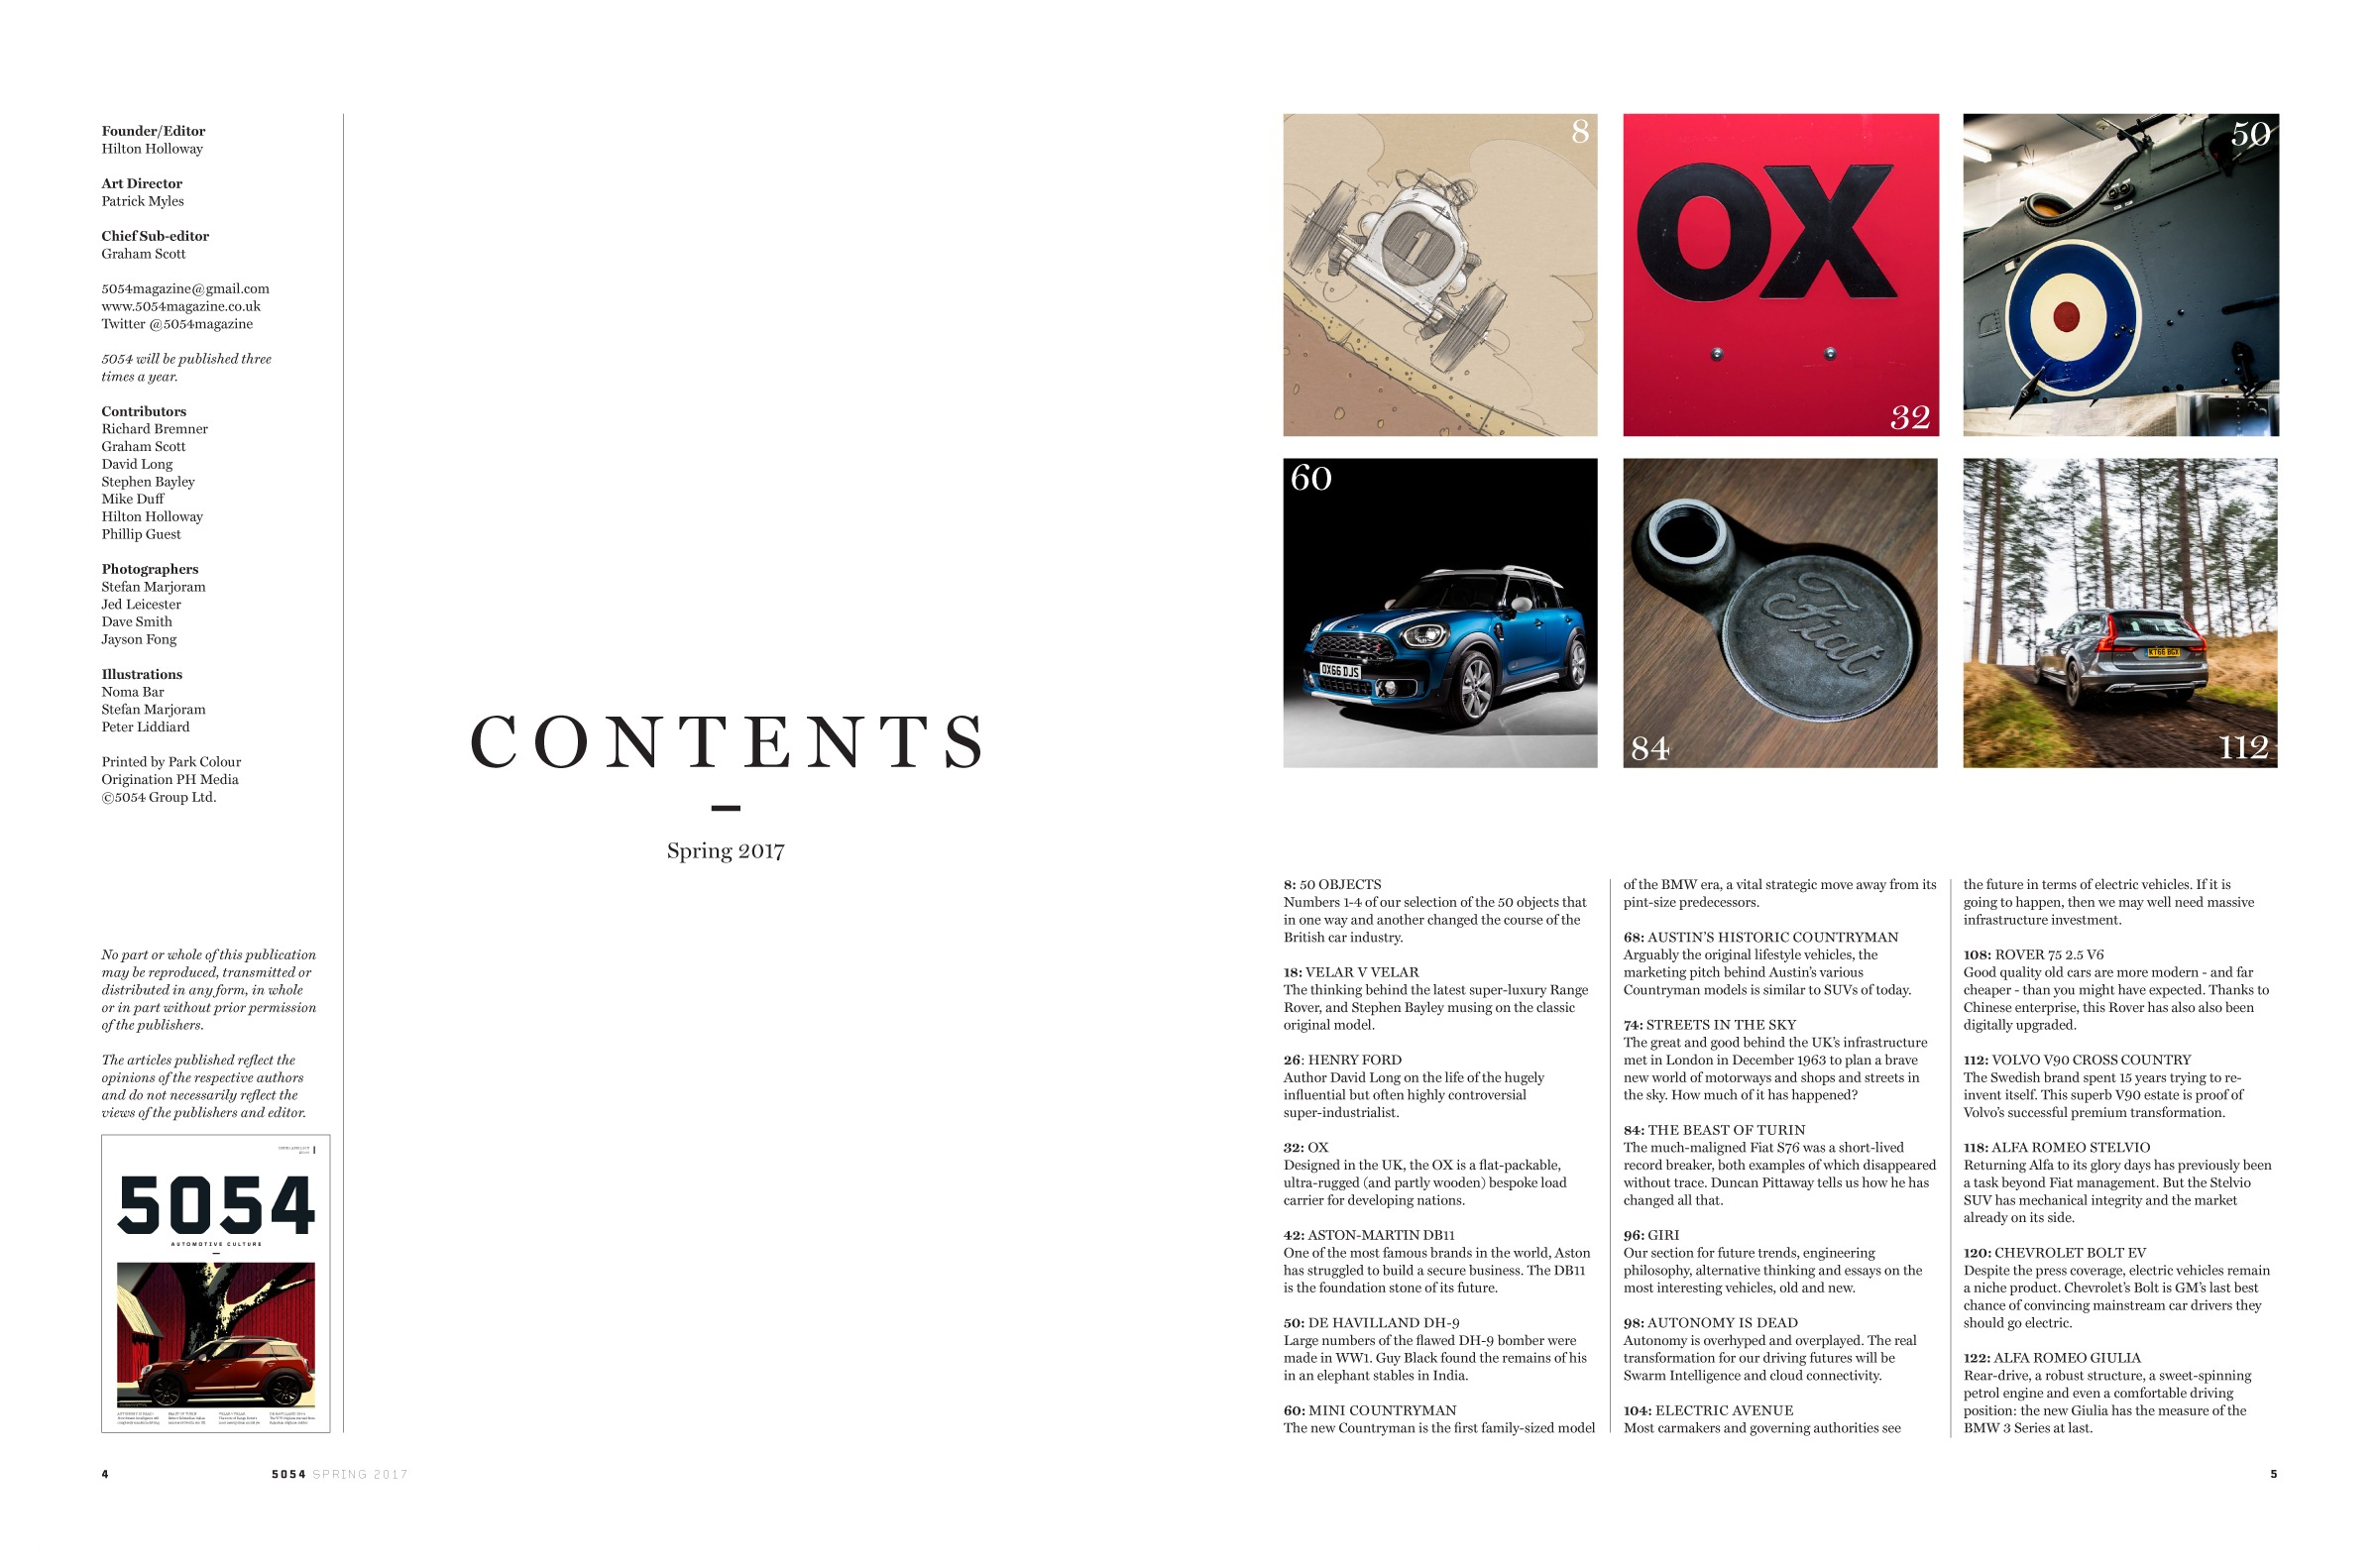 5054 Magazine Issue 1 contents